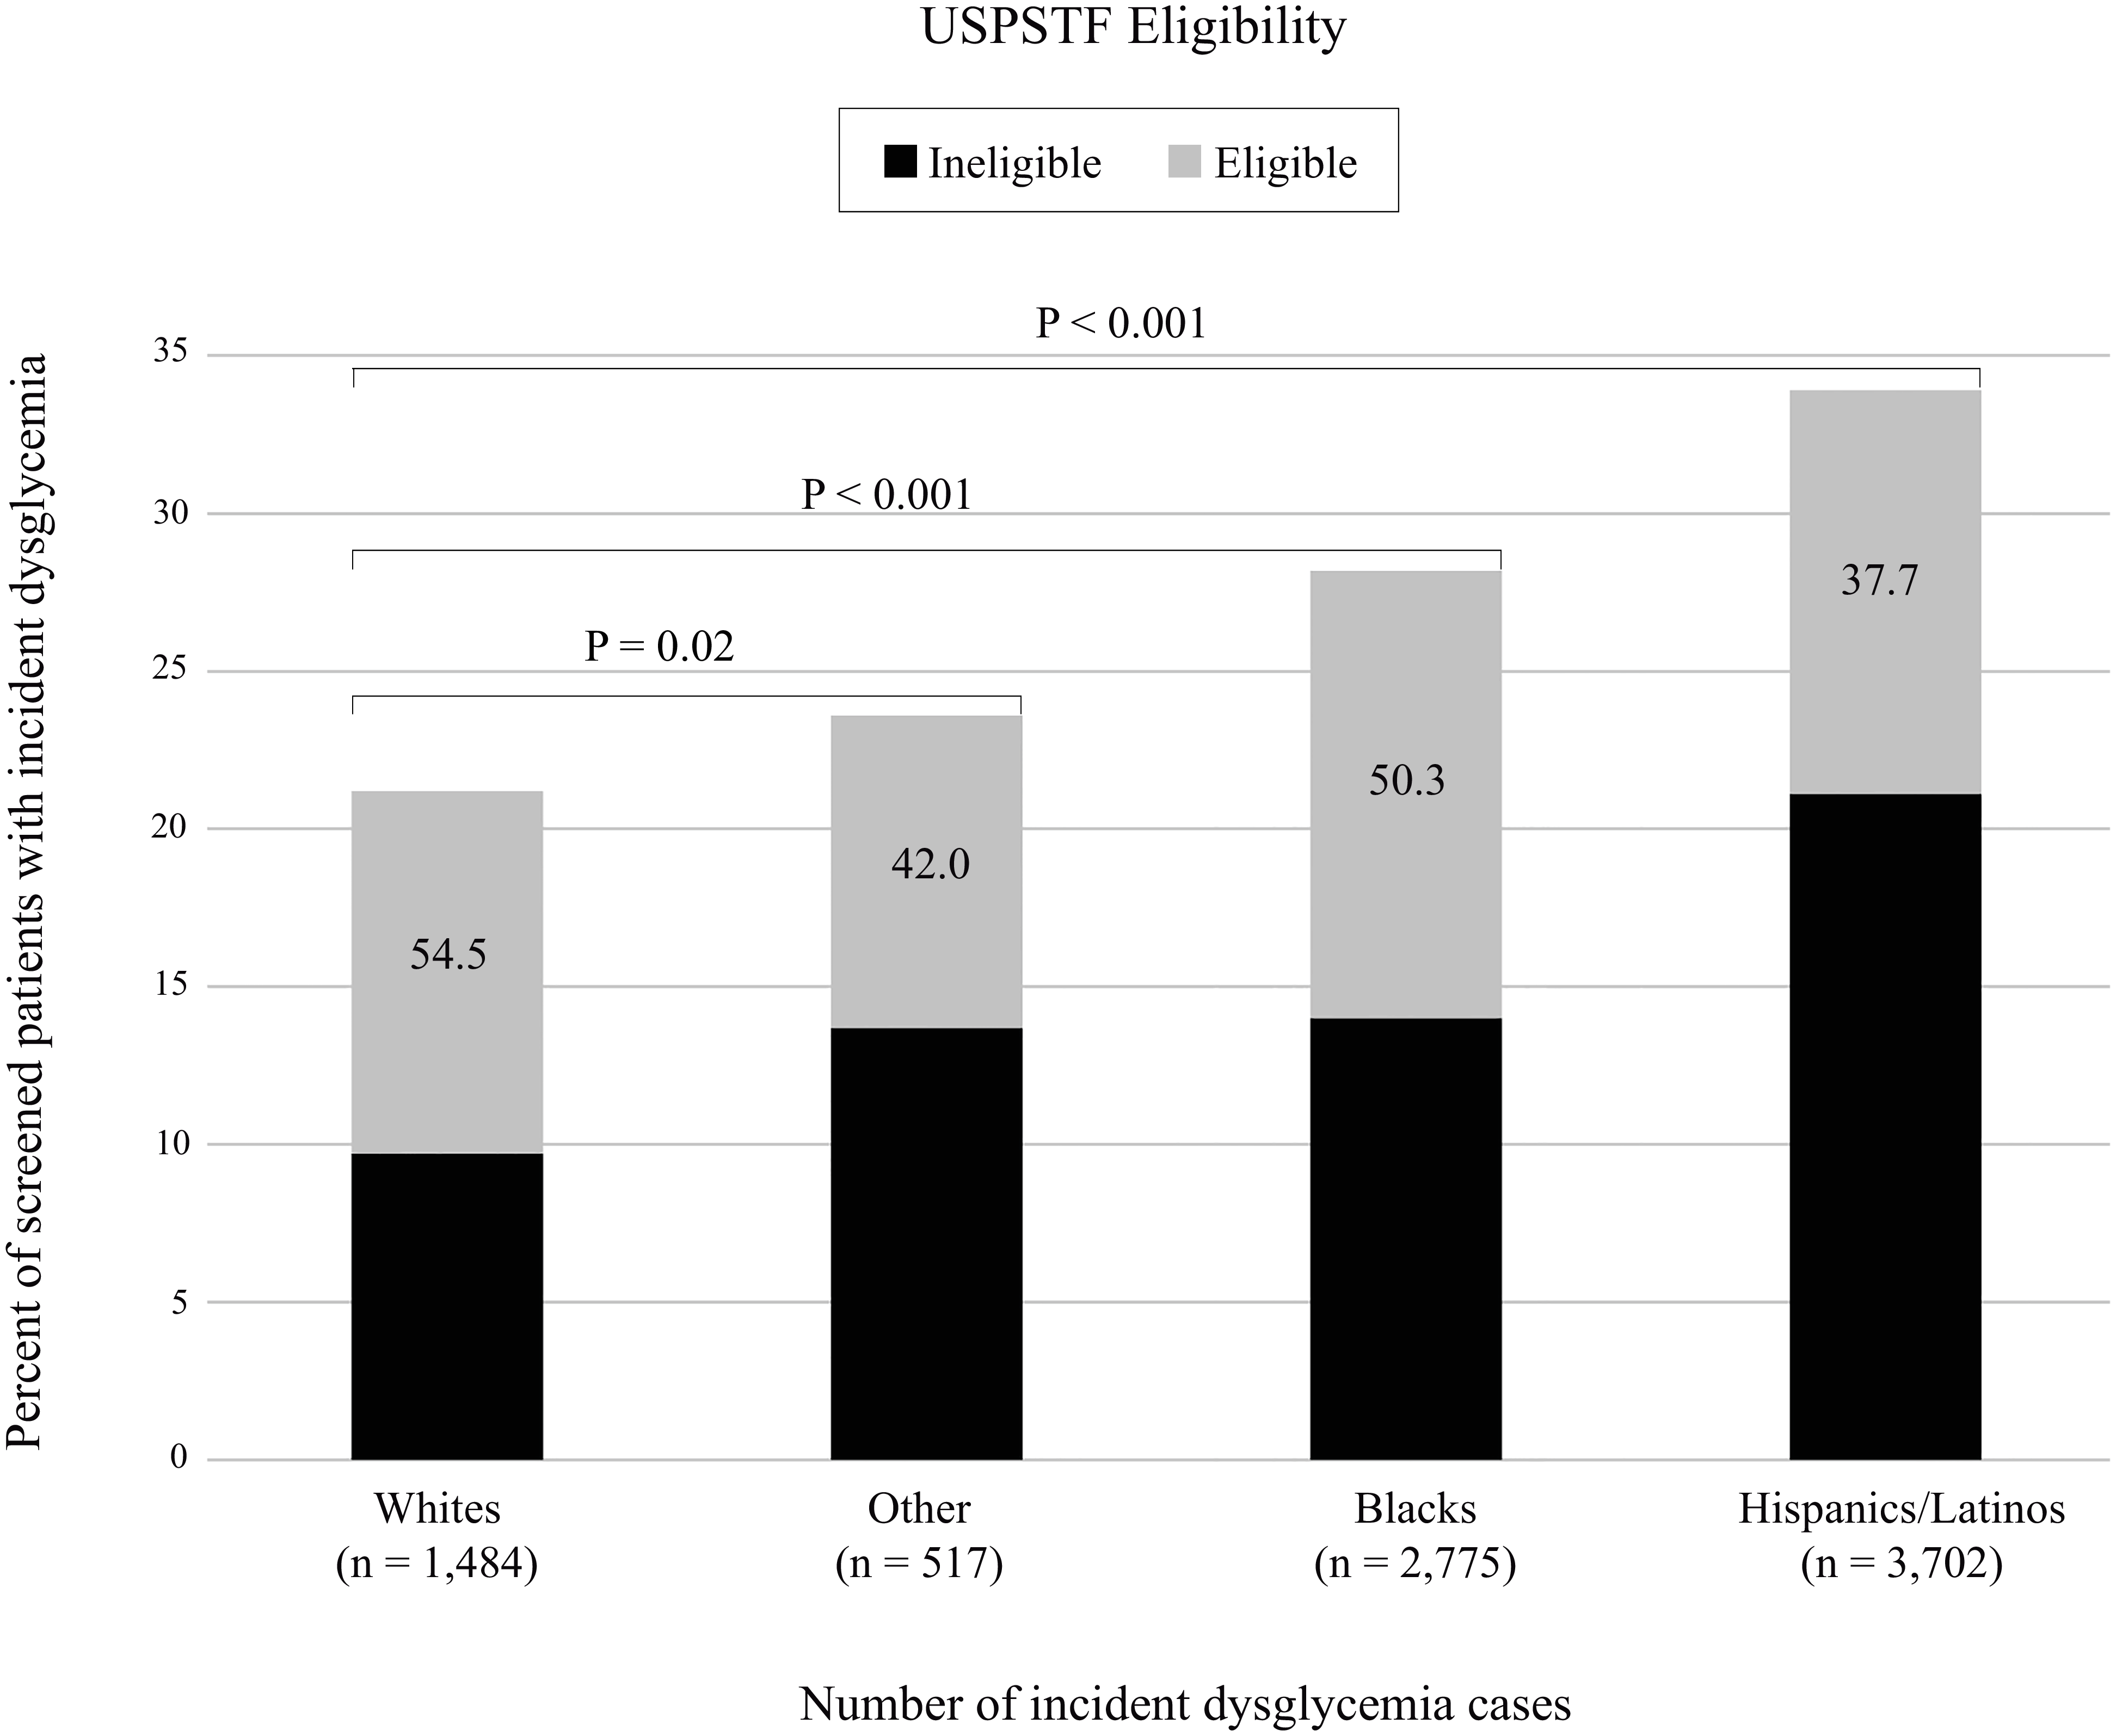 Development of clinically detected dysglycemia within 3 y among patients who received screening by race/ethnicity and USPSTF eligibility (<i>n</i> = 29,946).